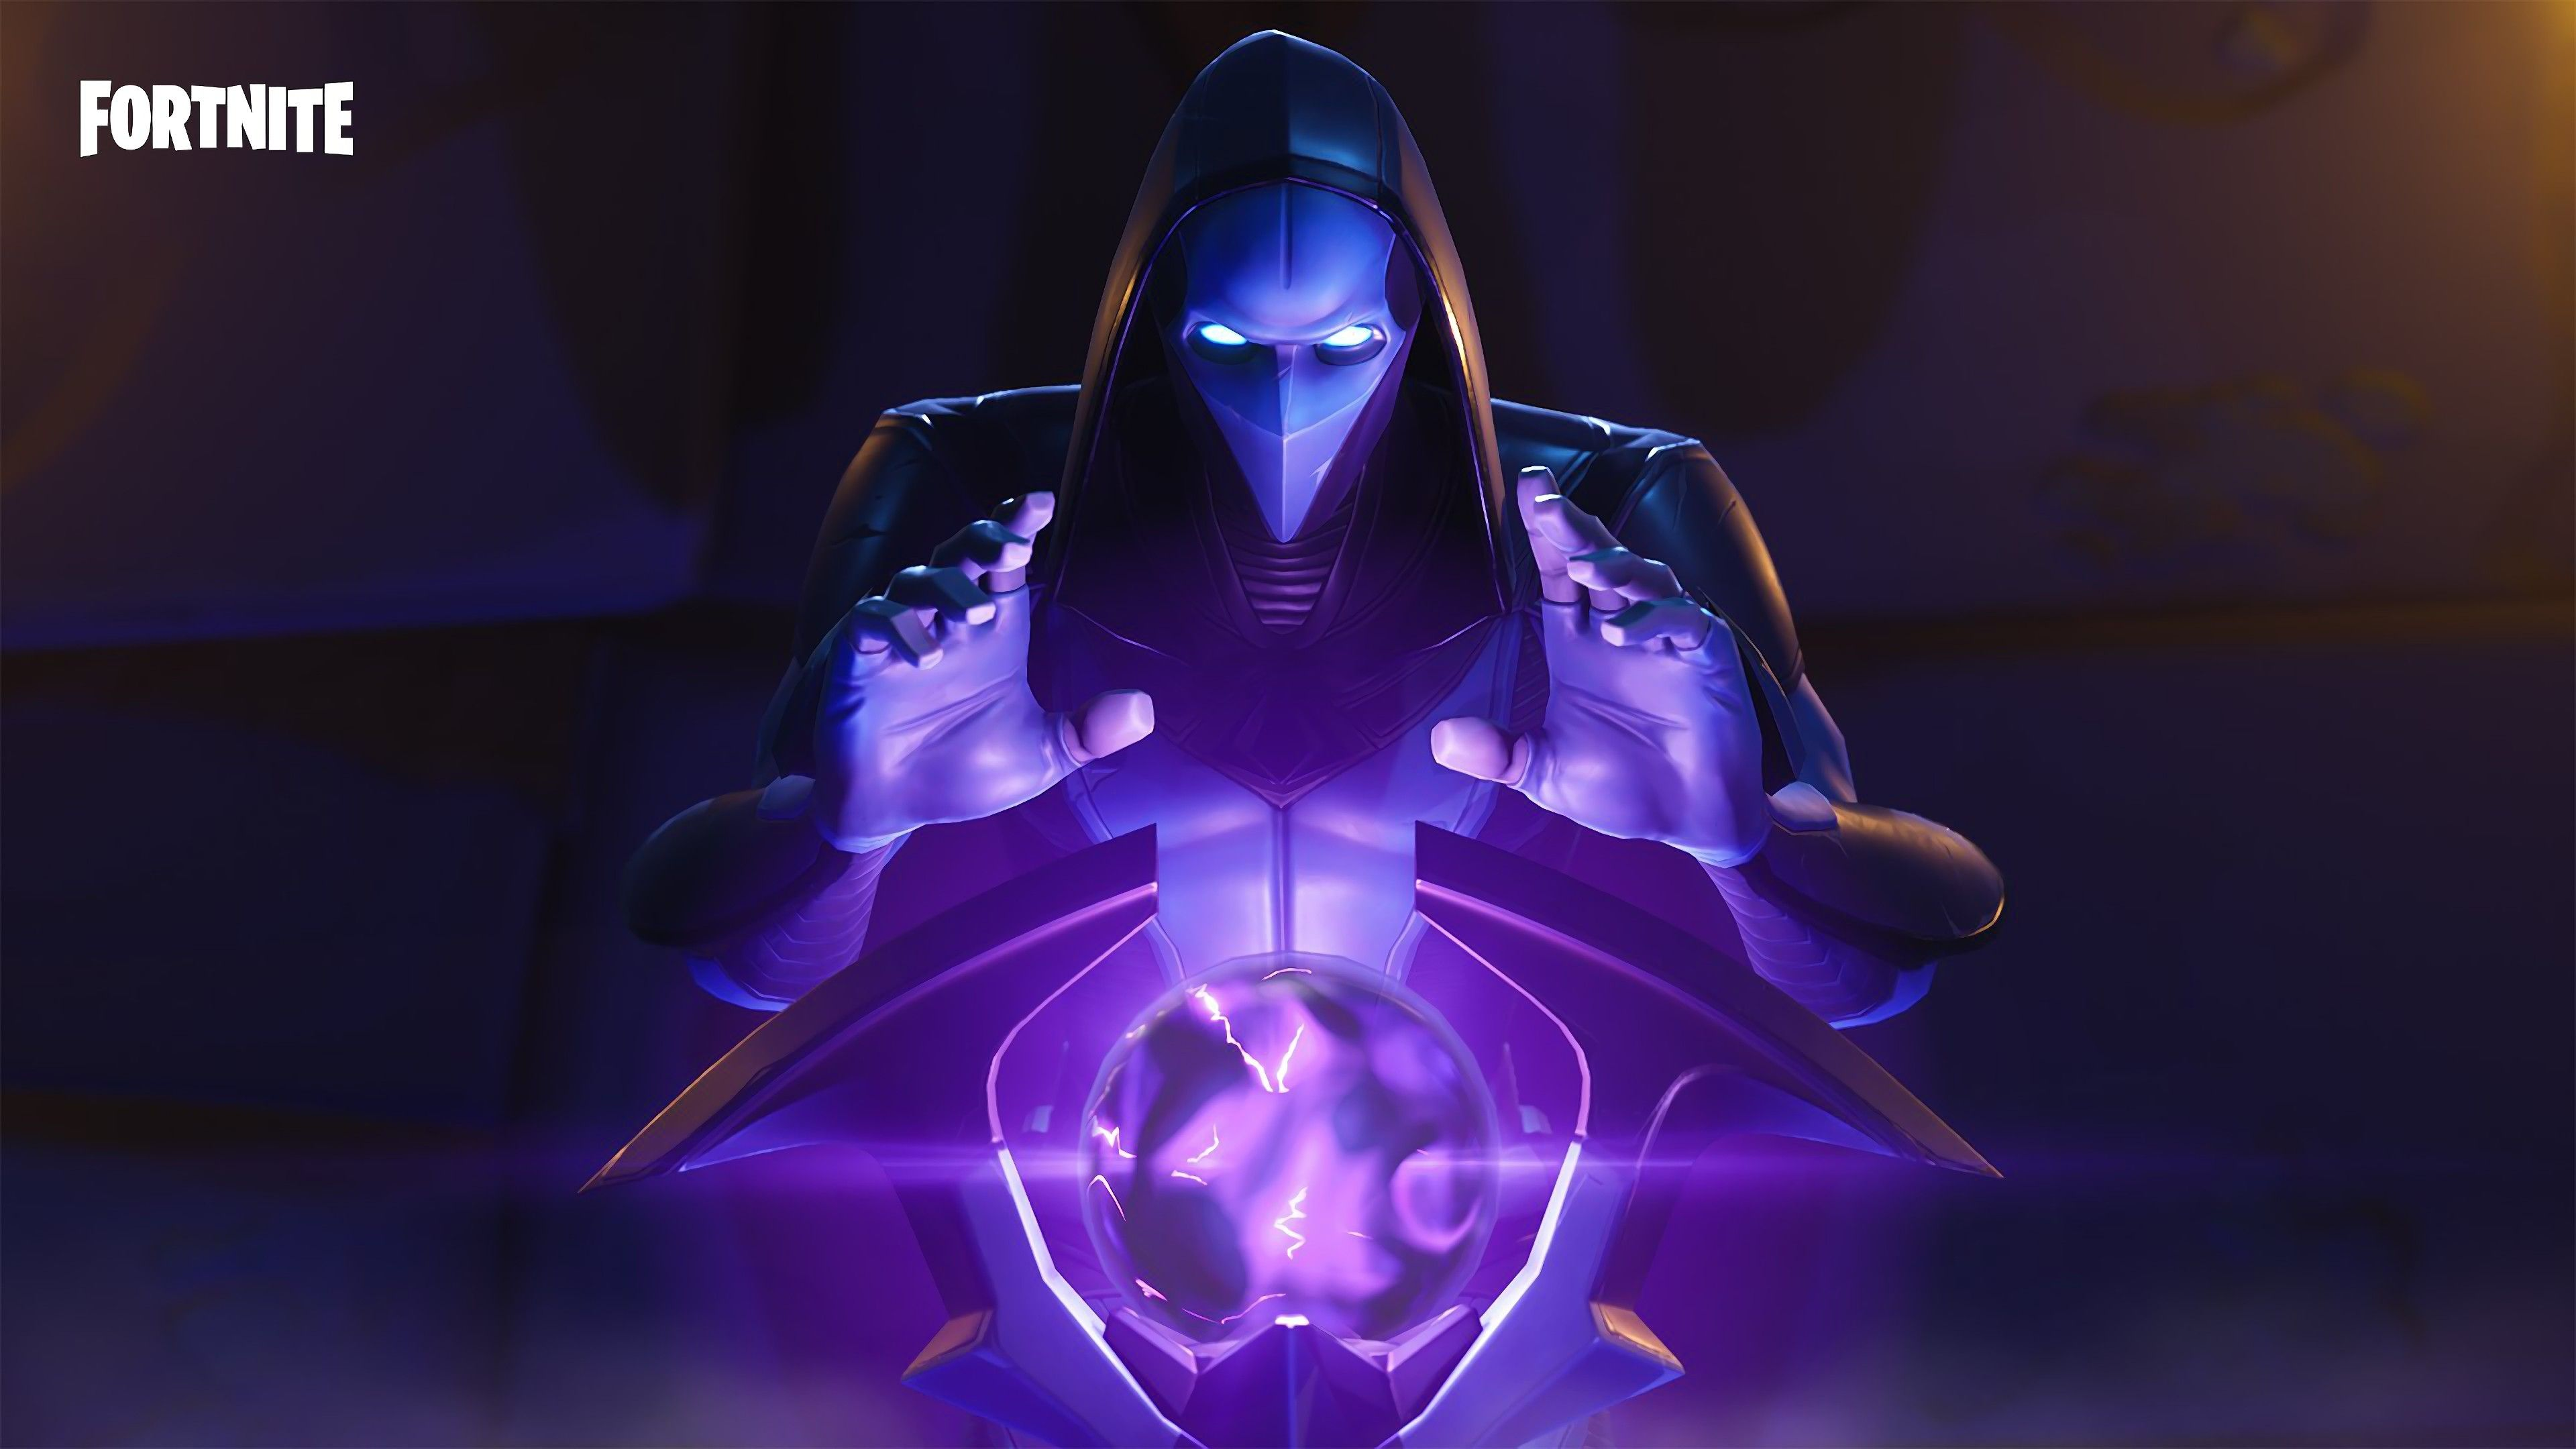 Omen Fortnite Battle Royale Wallpapers 4k Ultra HD ID:3103